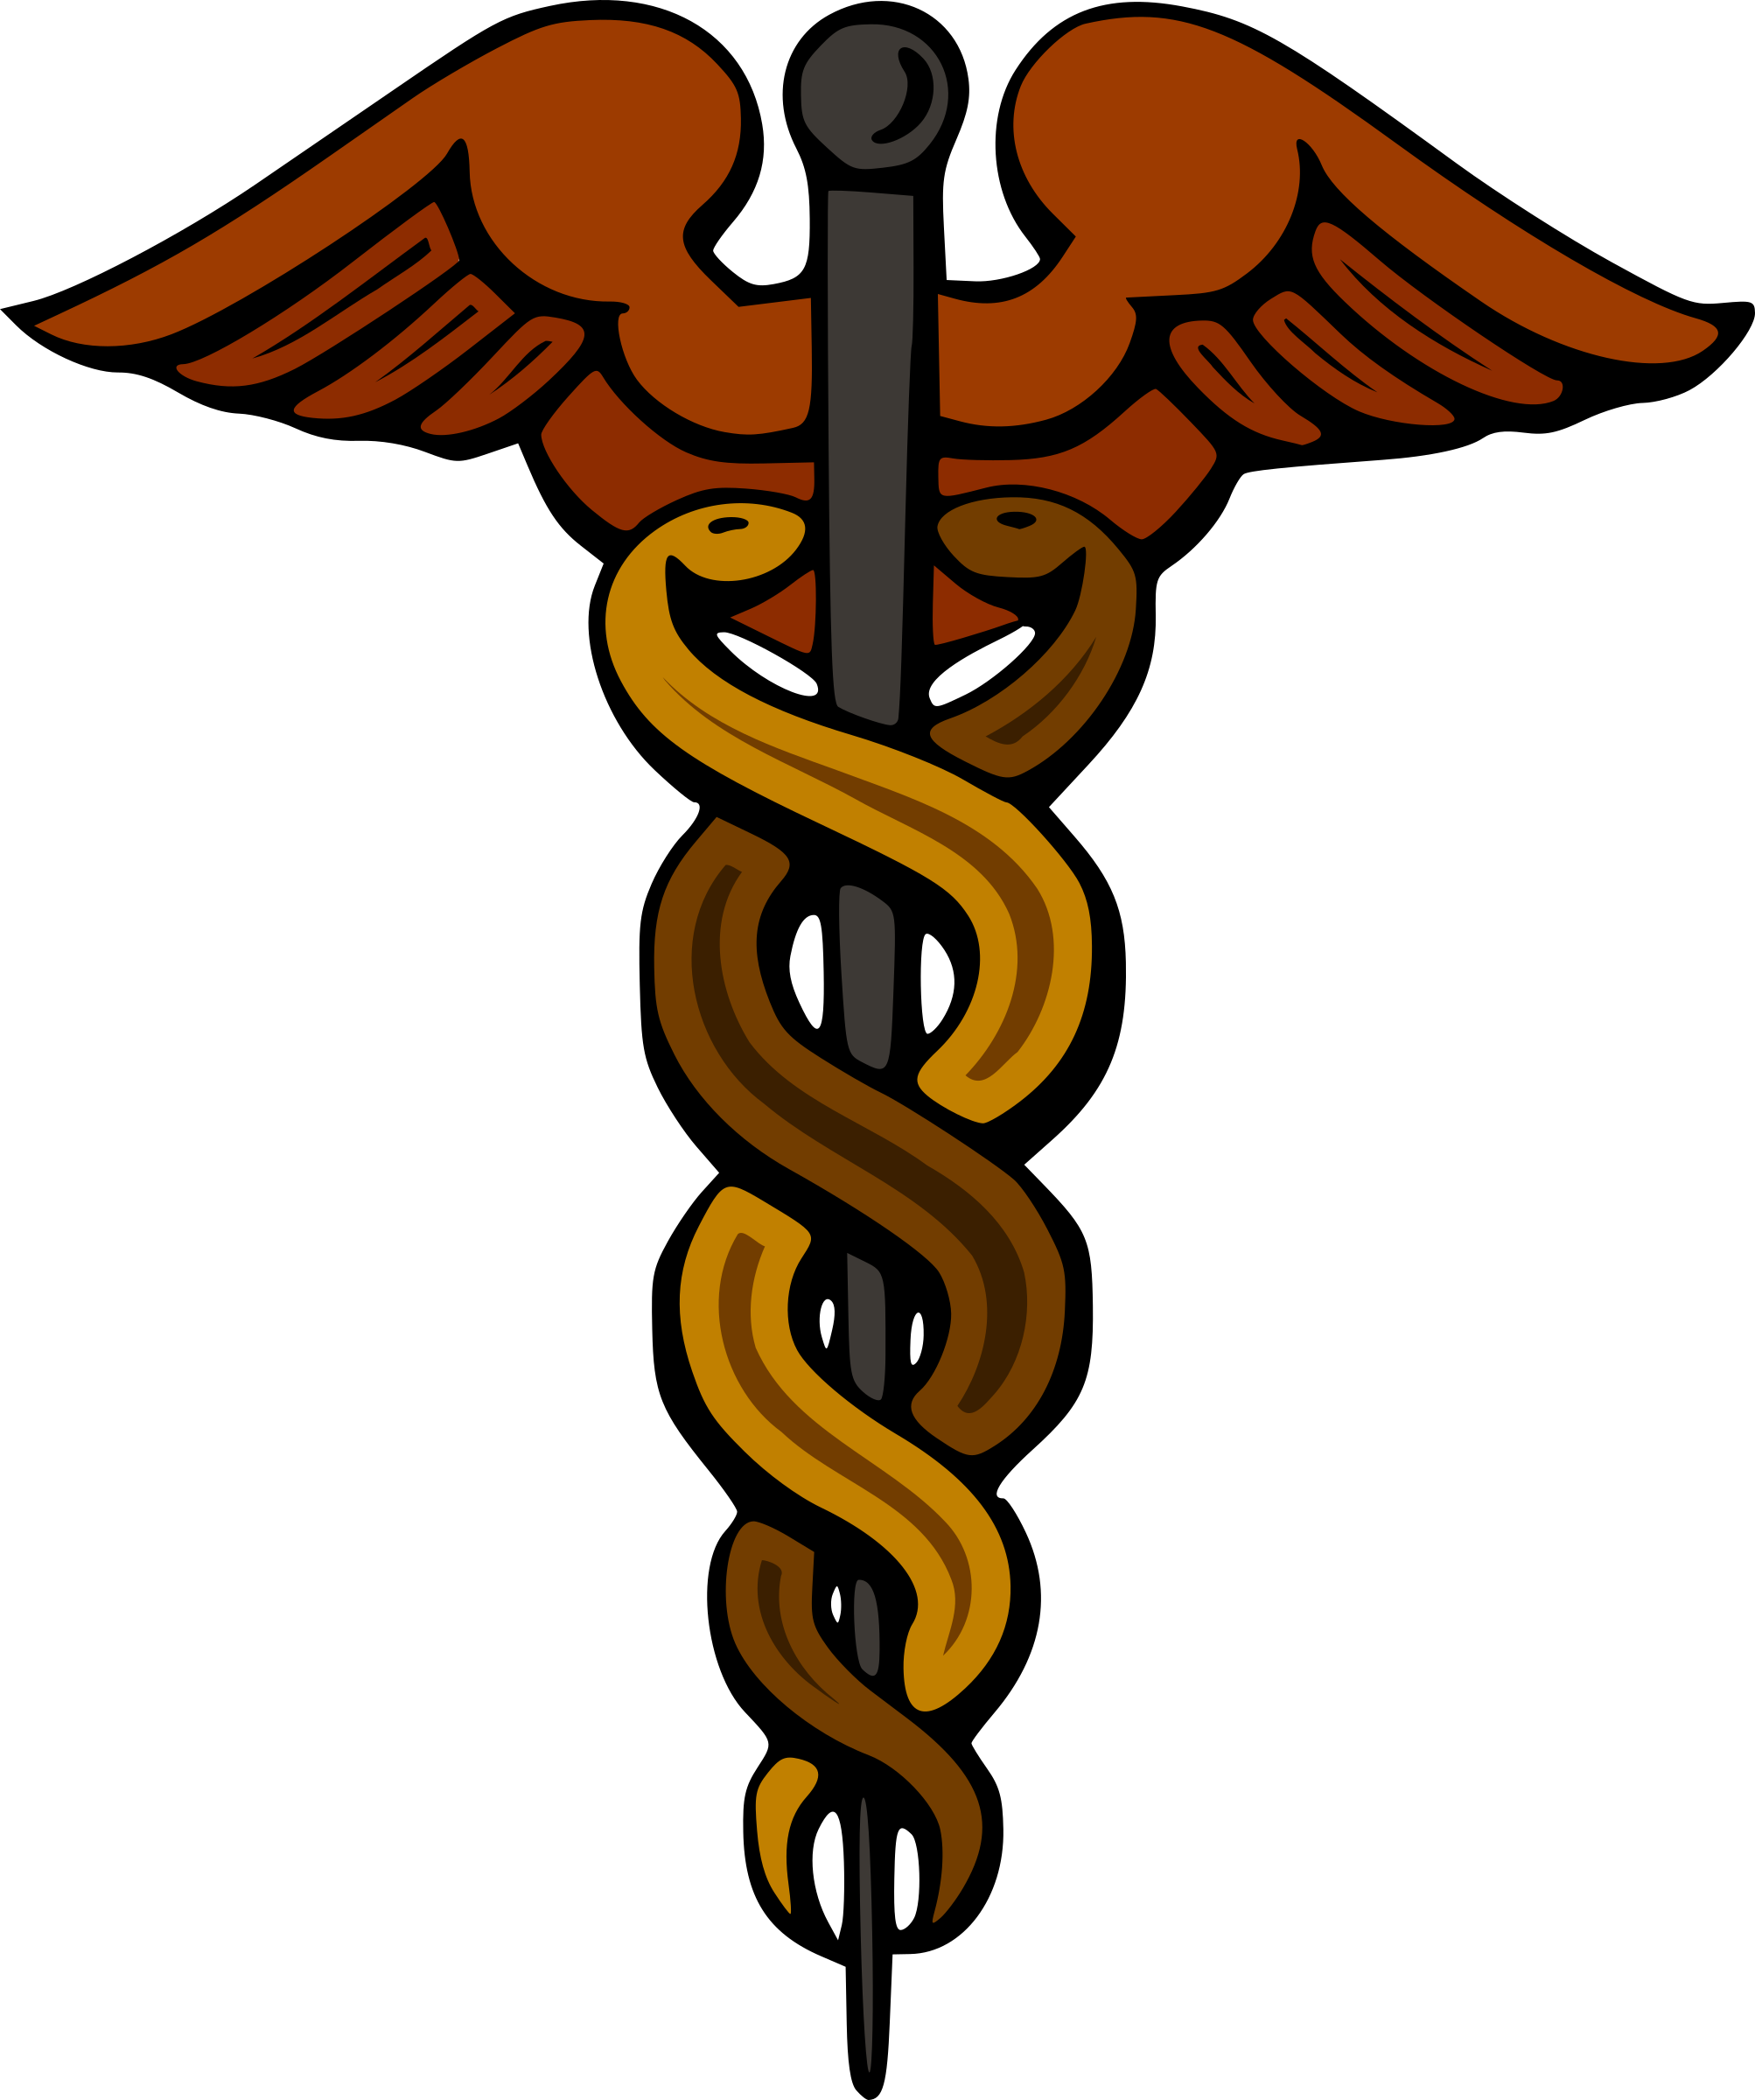 Caduceus 2 by Firkin